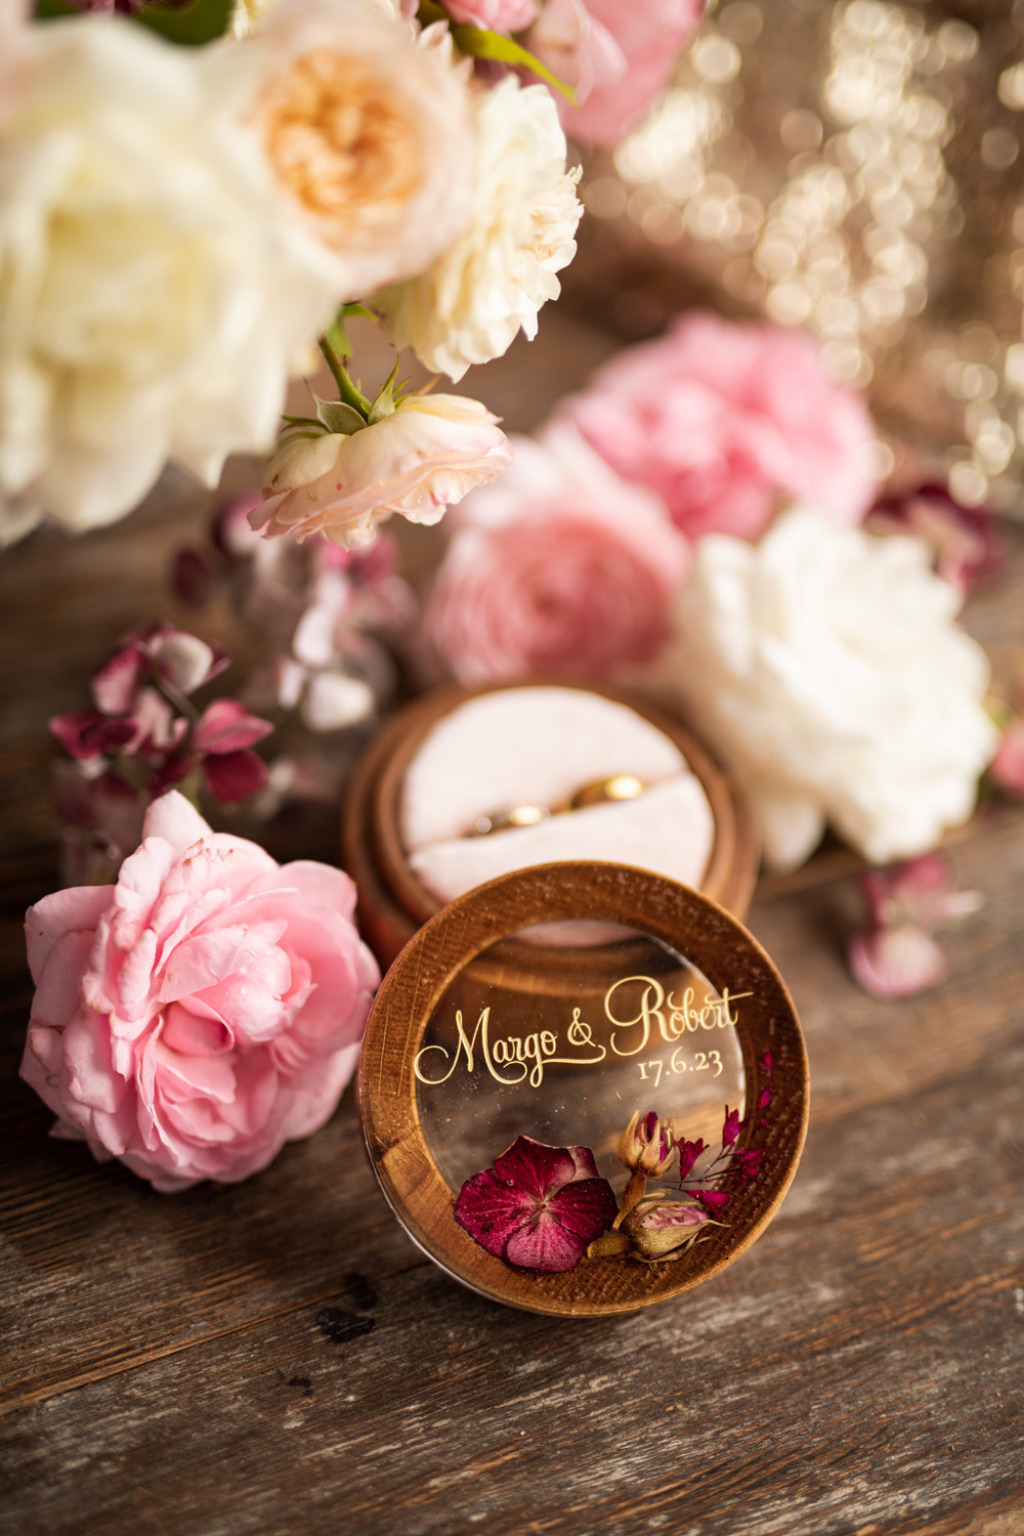 Engraved ring bearer box with real flowers